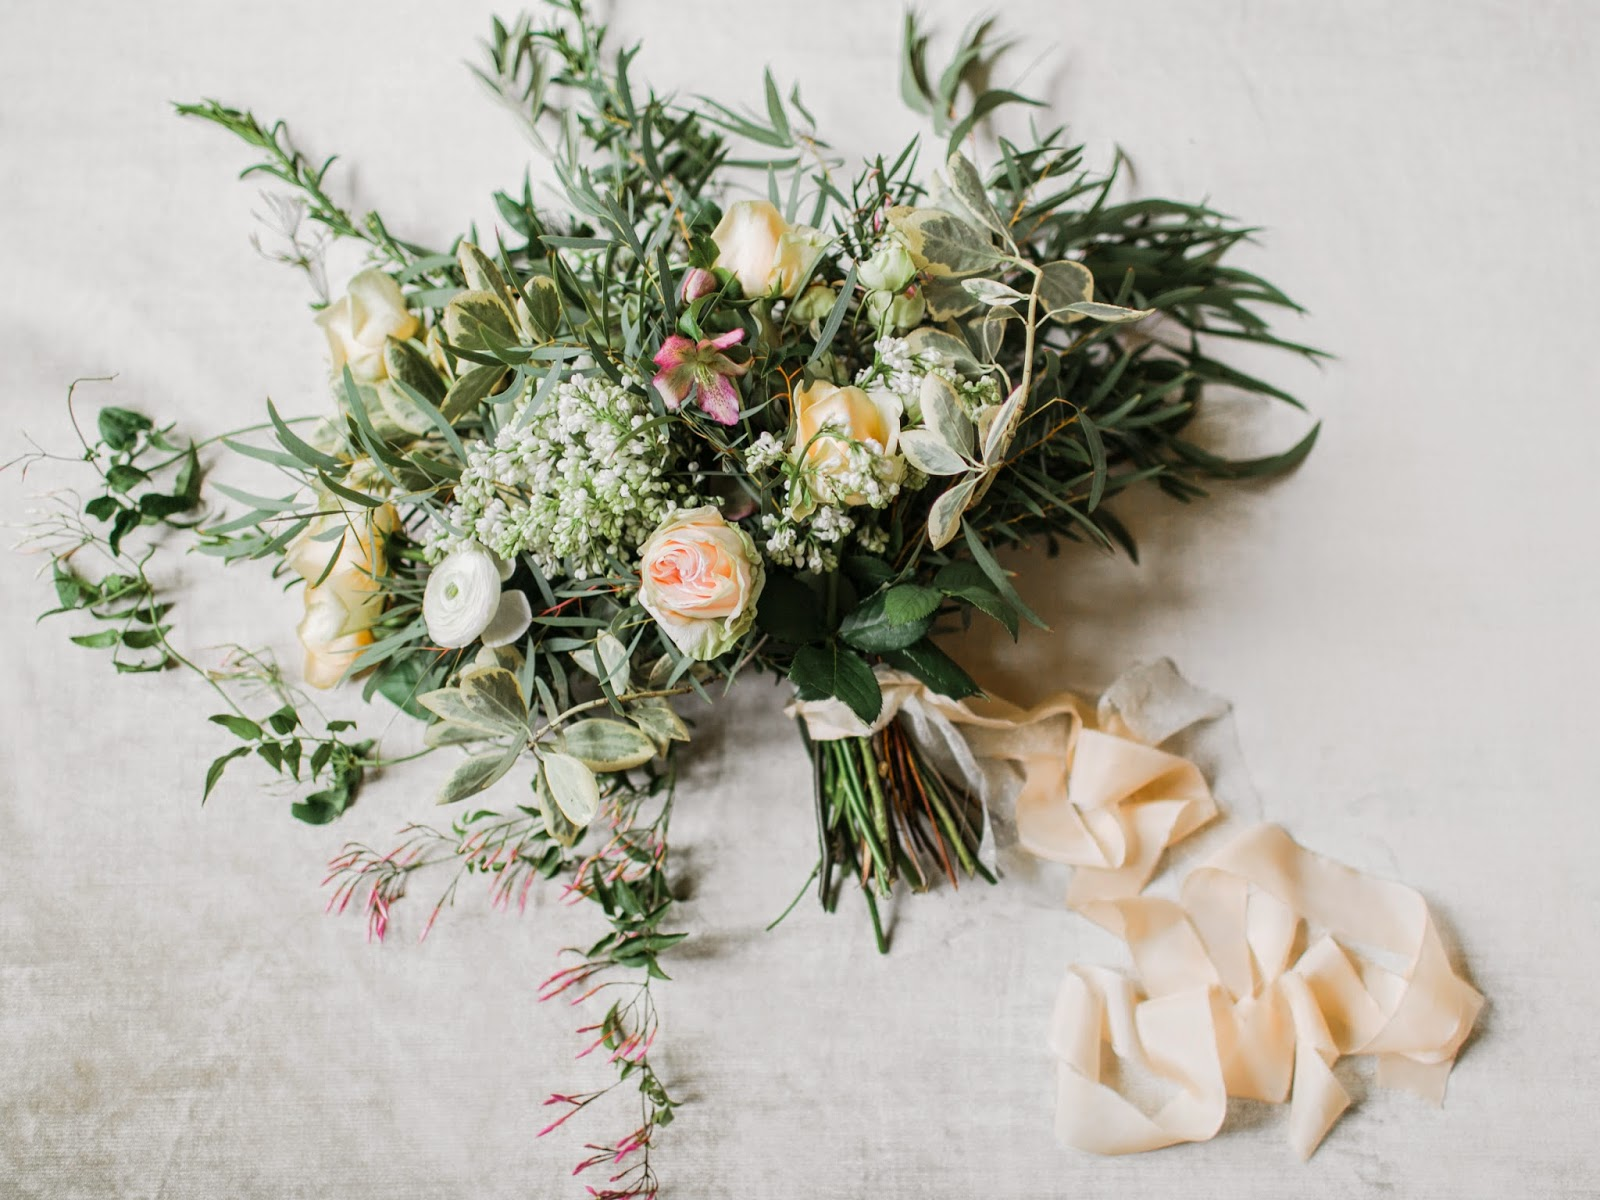 Jasmine Garden Roses Hyacinth Lilac Hellebores And Willow Eucalyptus Lets Just Say This Bouquet Smelled Heavenly